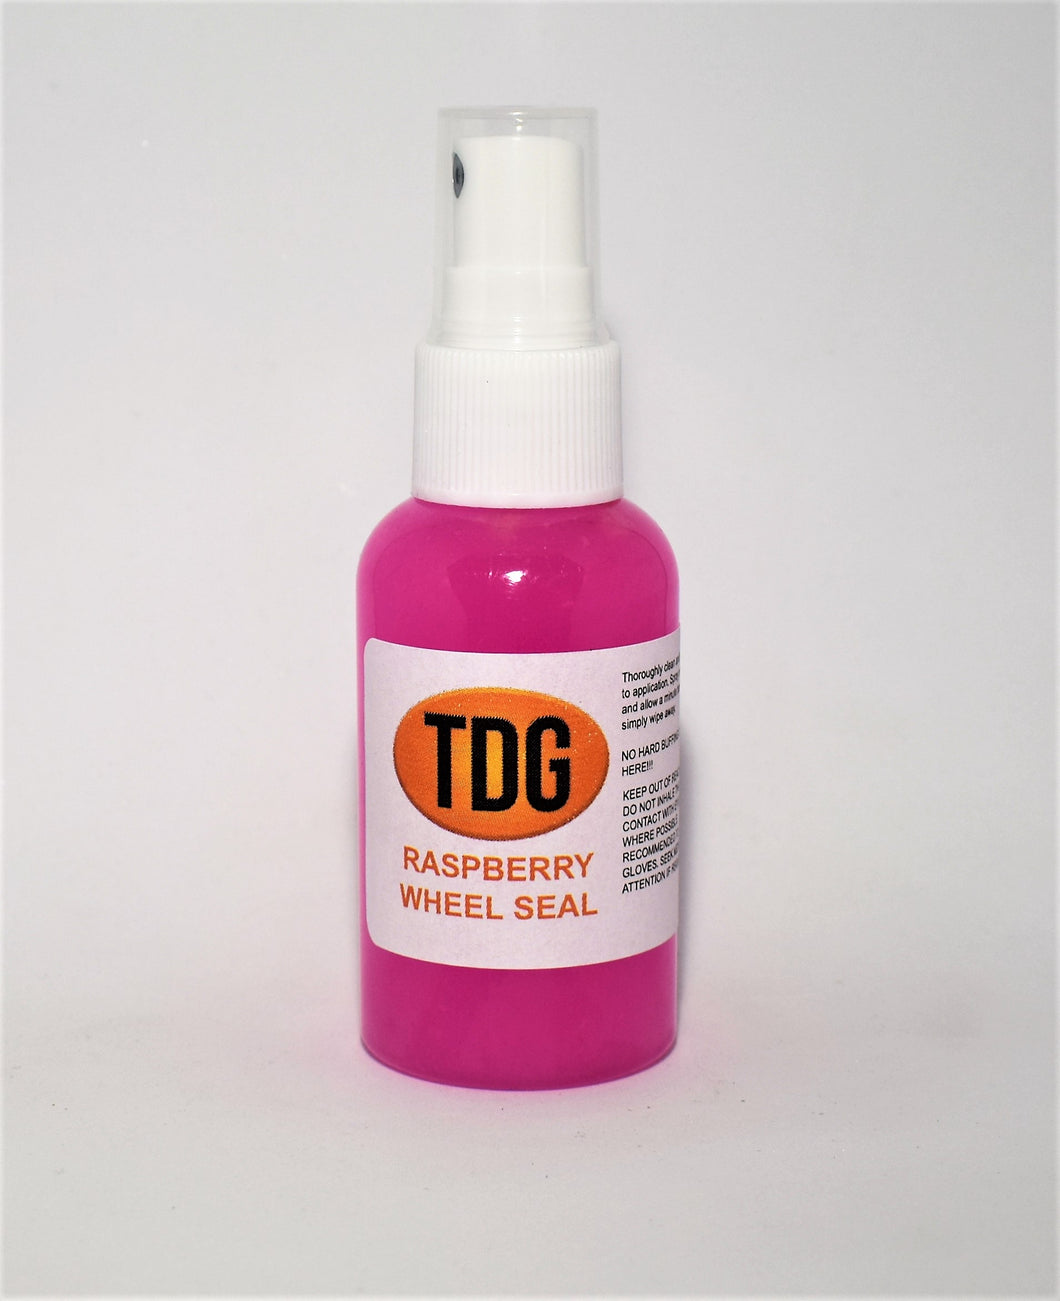 TDG Products Raspberry Wheel Seal 50ml